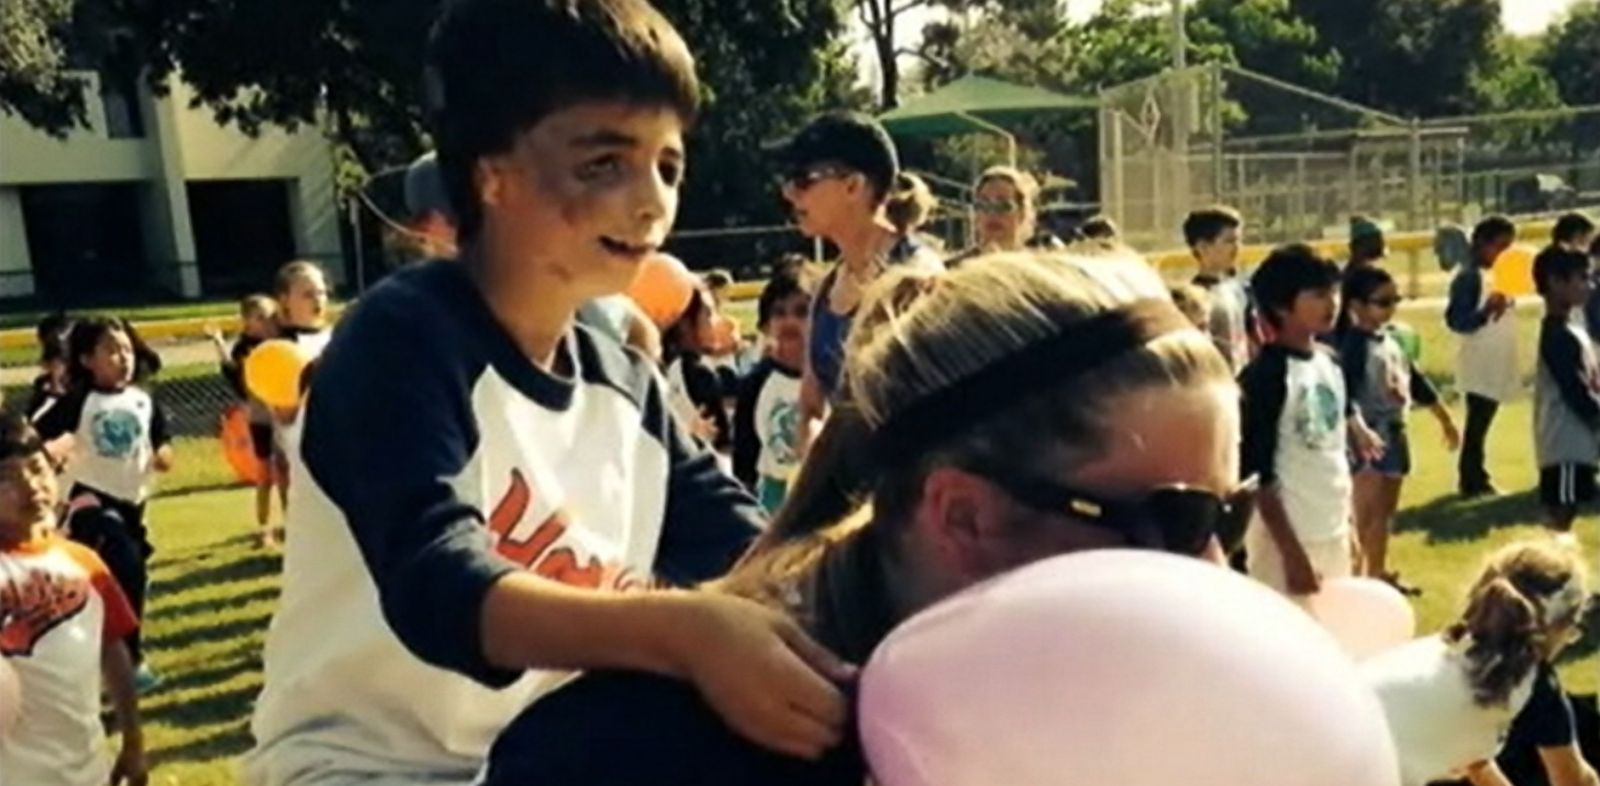 VIDEO: Tiffany Thorn made sure one of her third-grade students crossed the finish line at Field Day.